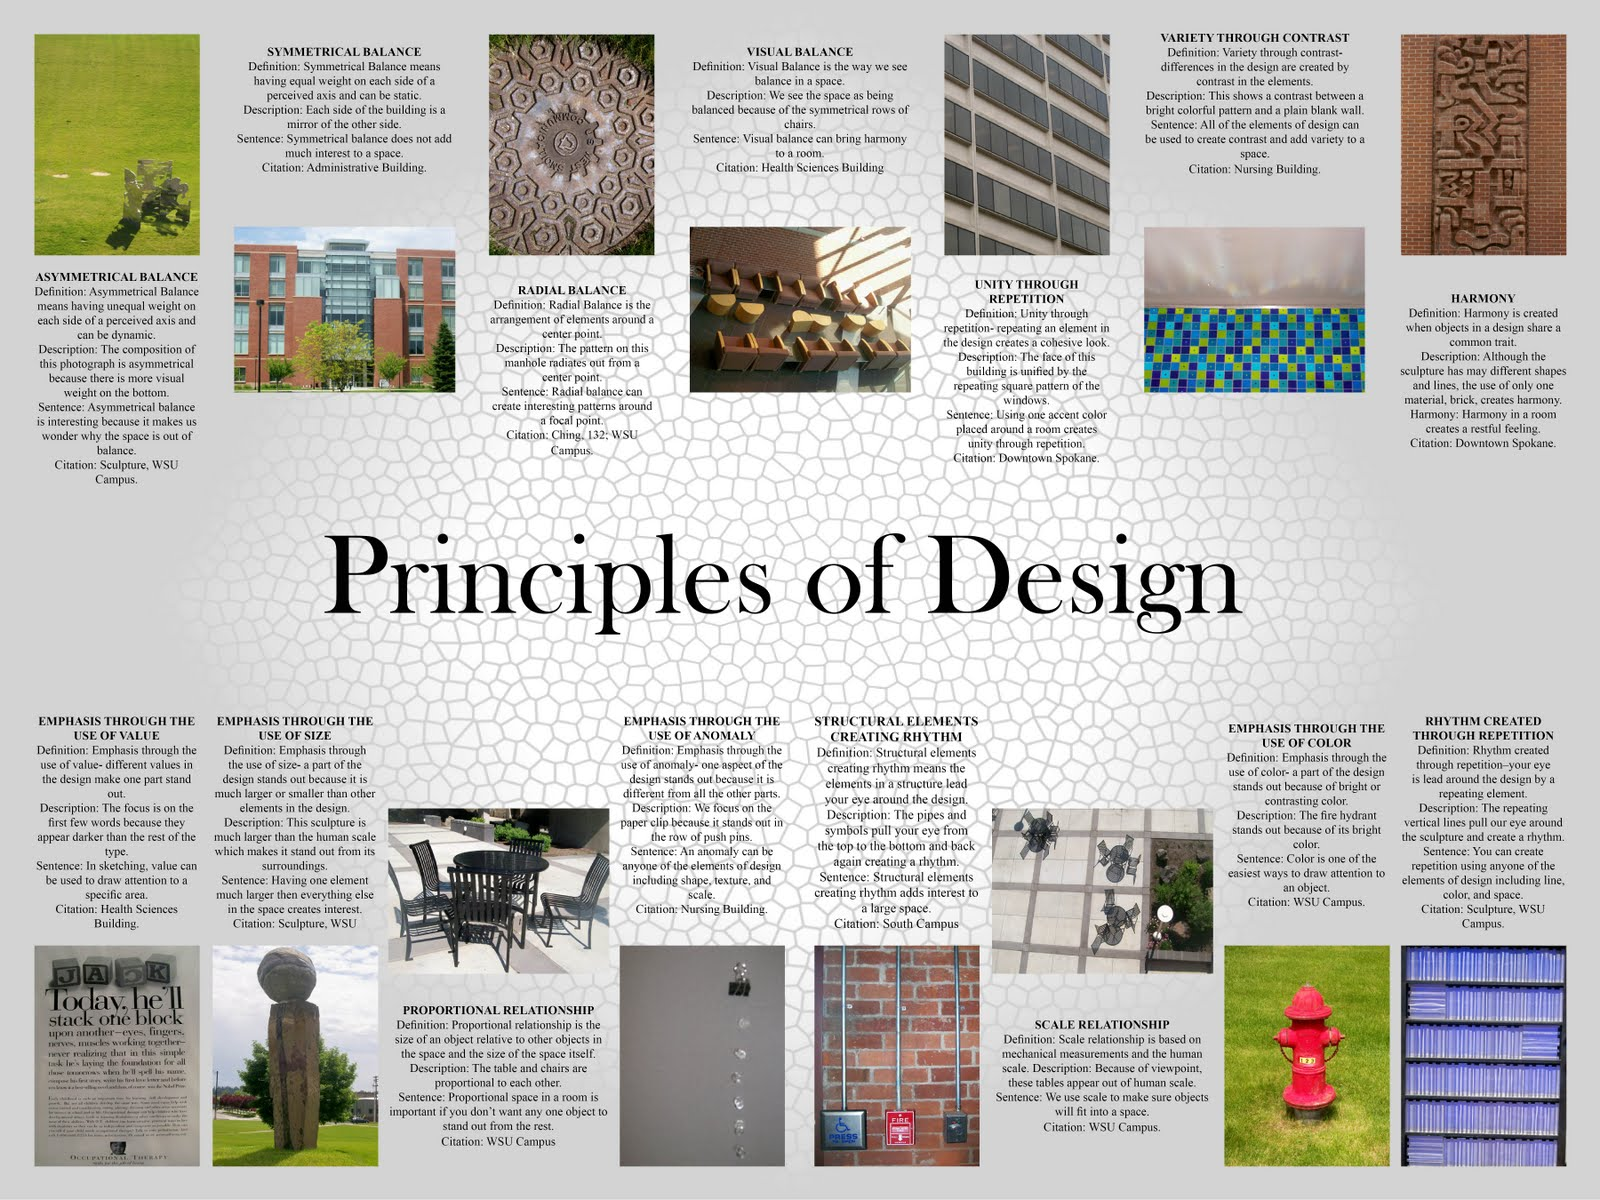 Shannon Stewart: Elements and Principles of Design